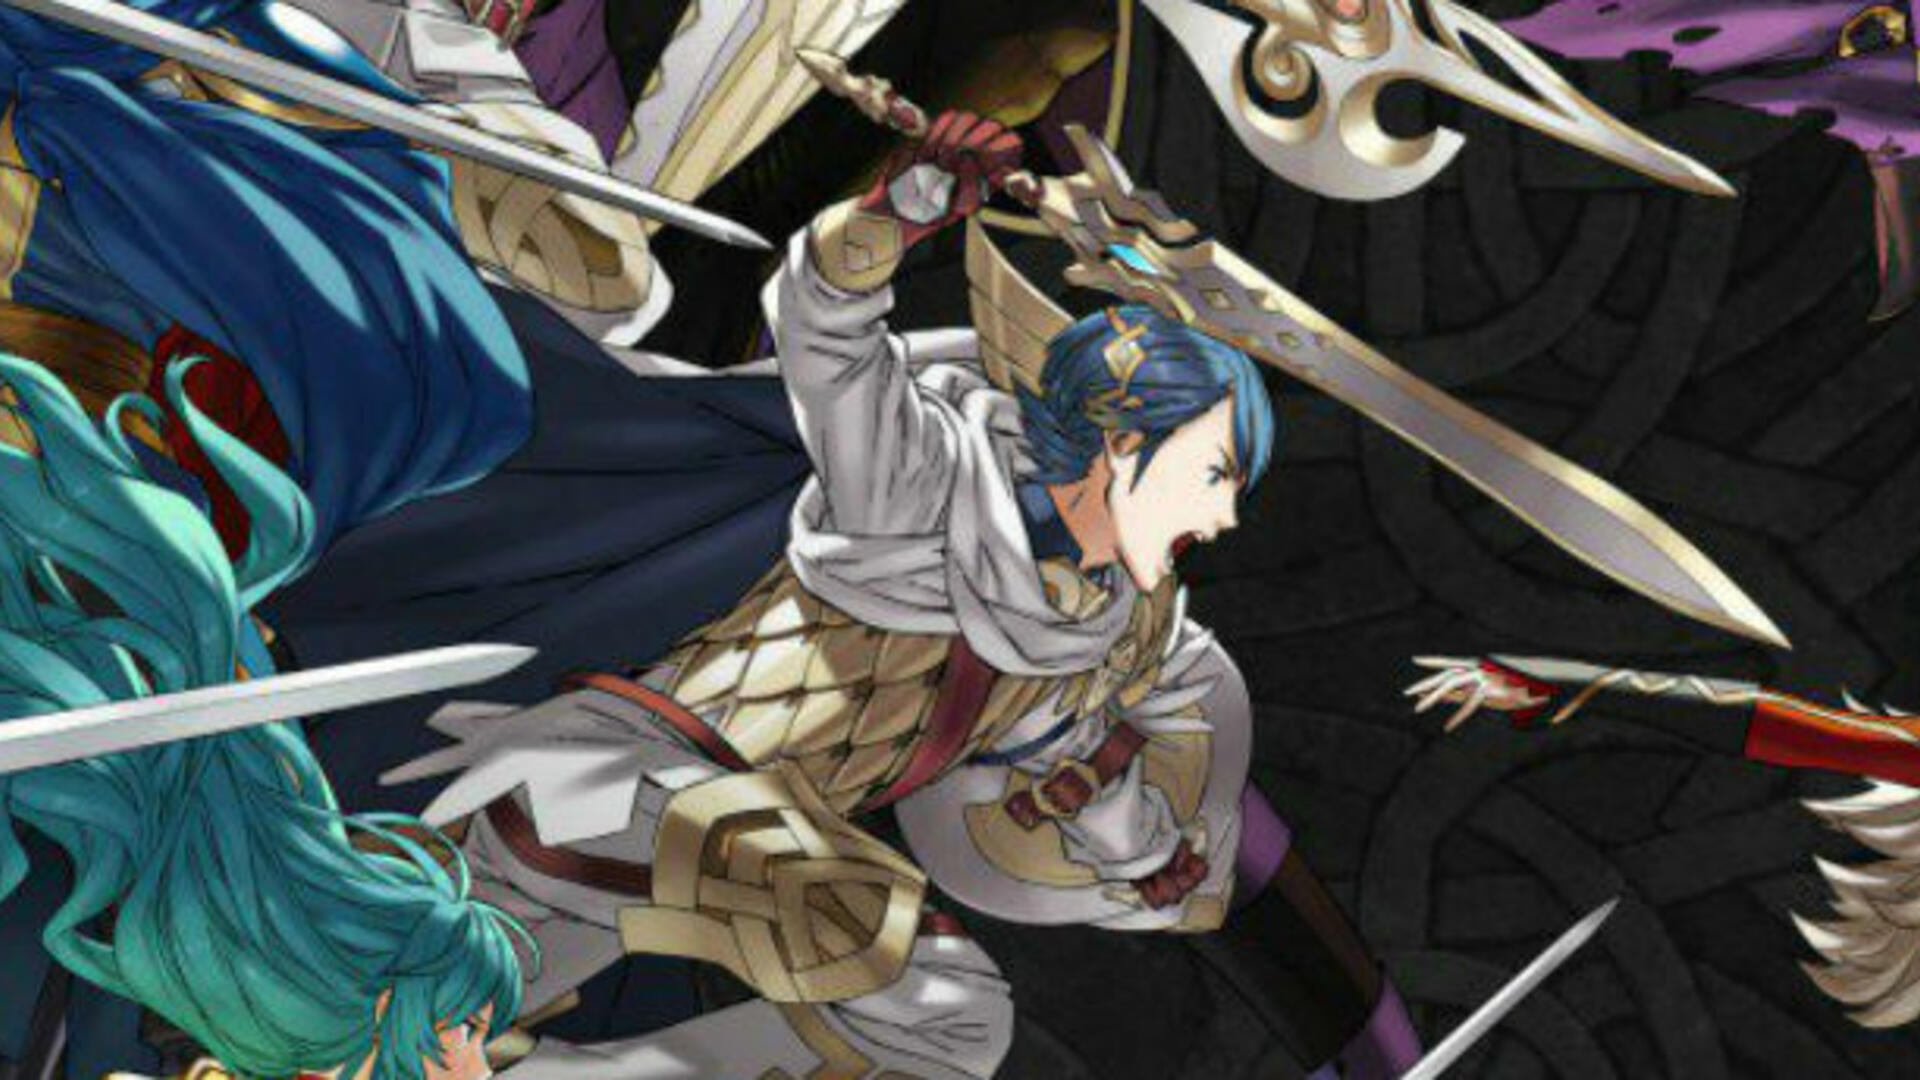 Fire Emblem Heroes FAQ and Guide: How to Get Five-Star Characters, How to Get Orbs, and More